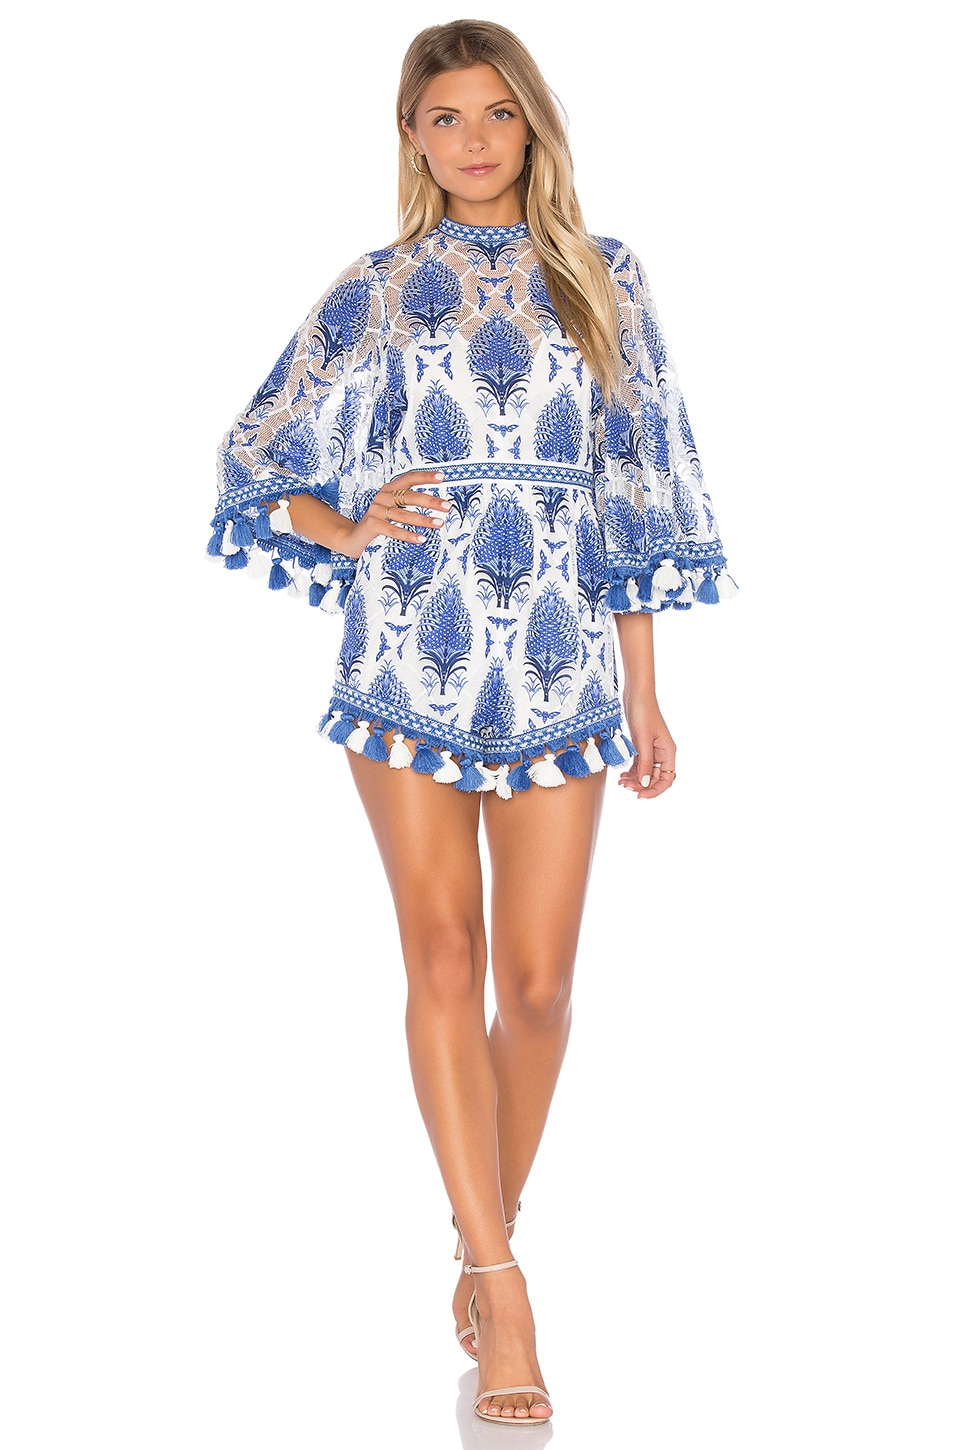 Alice McCall Young Hearts Run Free Romper in Blue